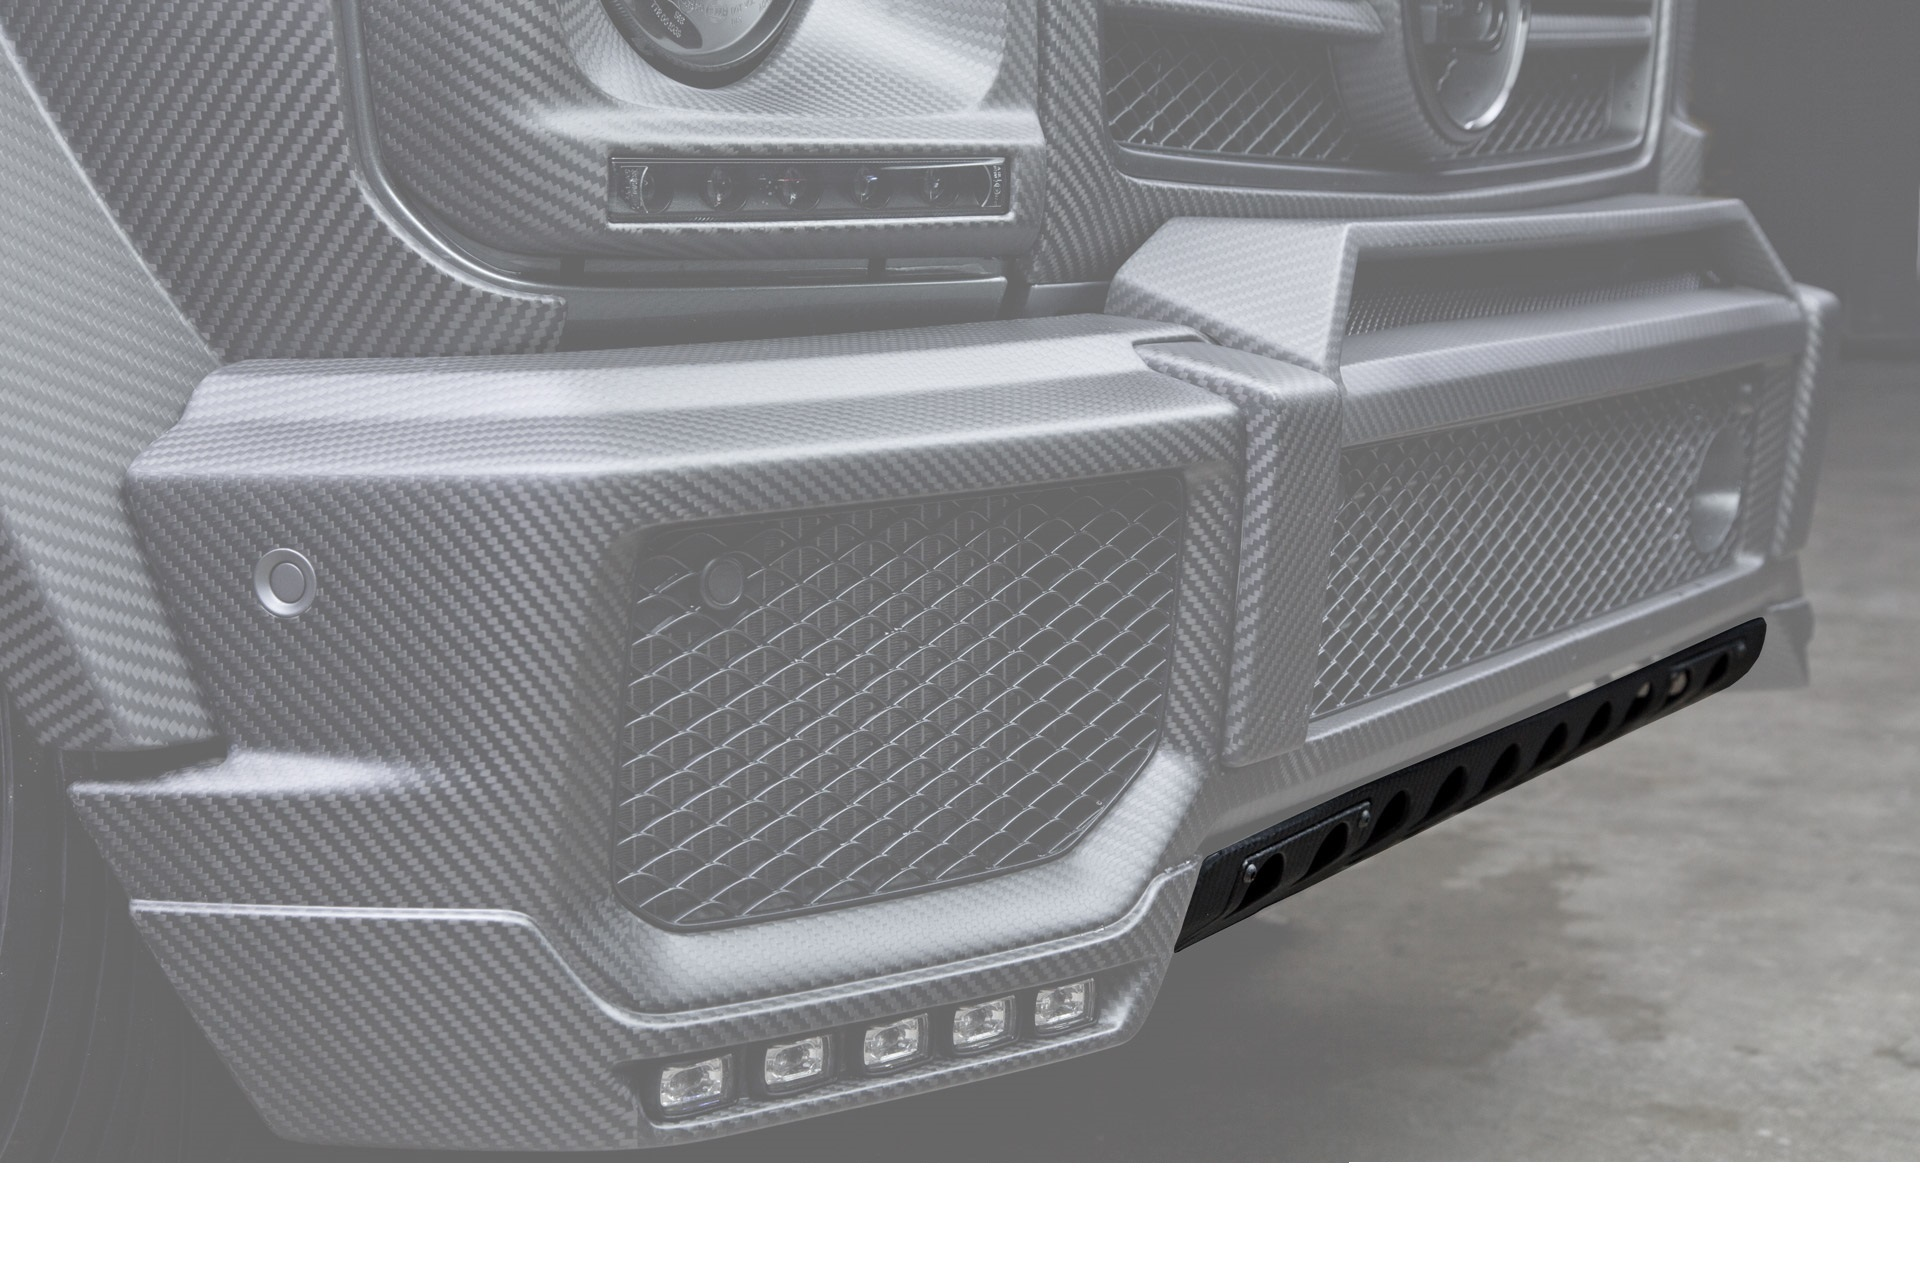 Hodoor Performance Carbon fiber protection Brabus Style for Mercedes G-class W463